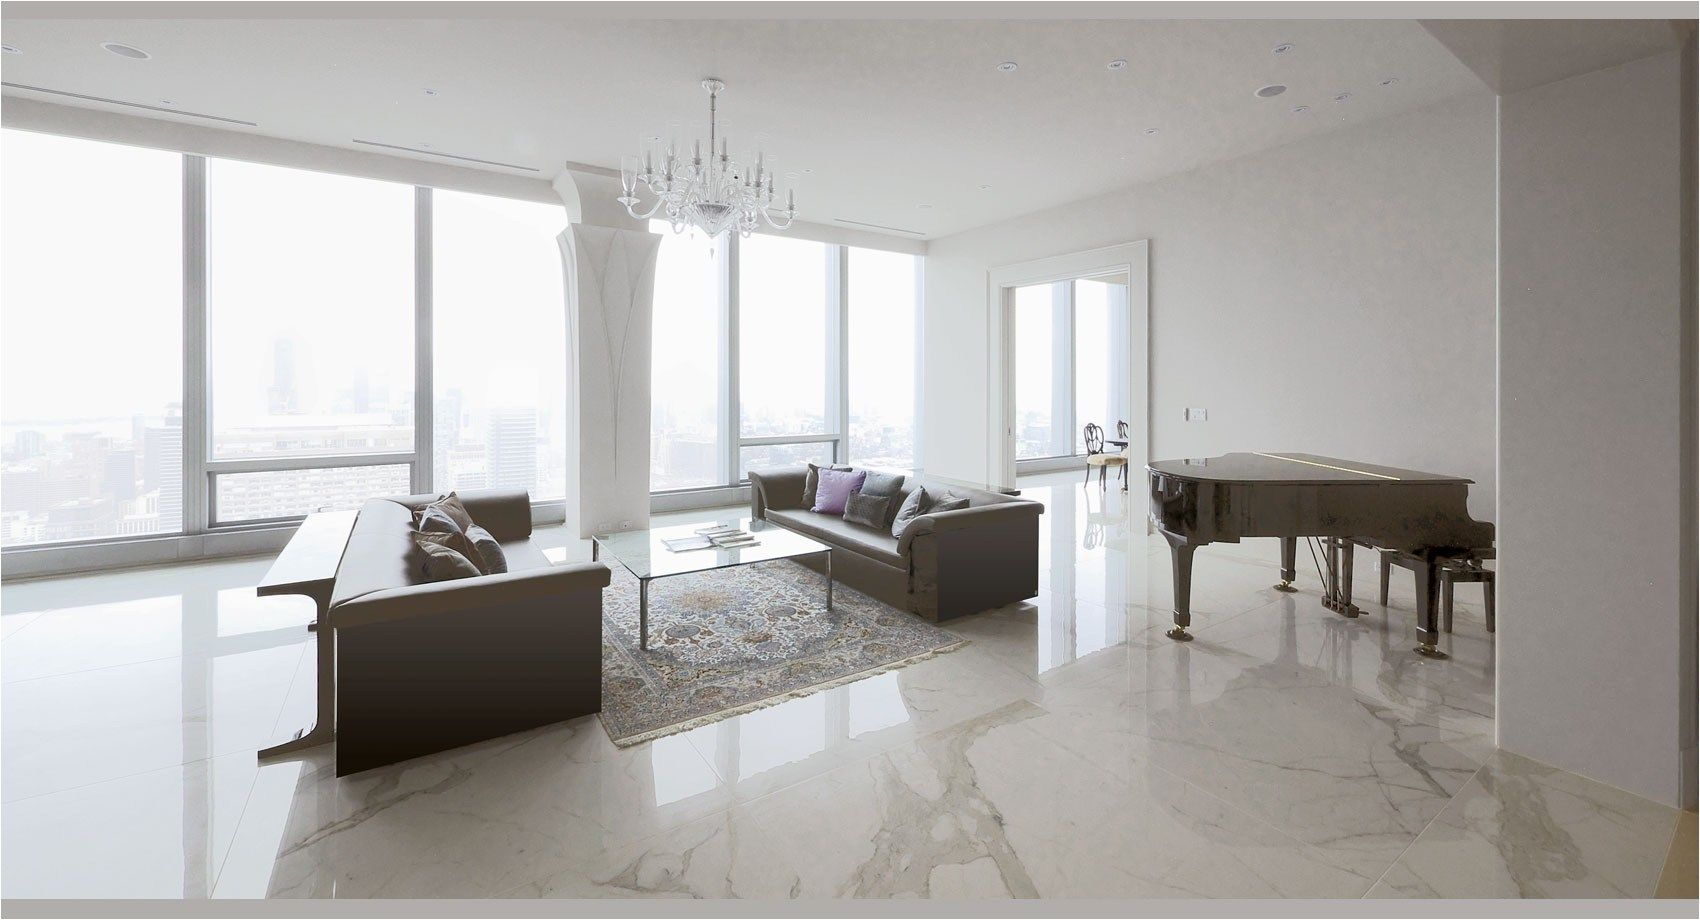 40 Stunning And Clean White Marble Floor Living Room De